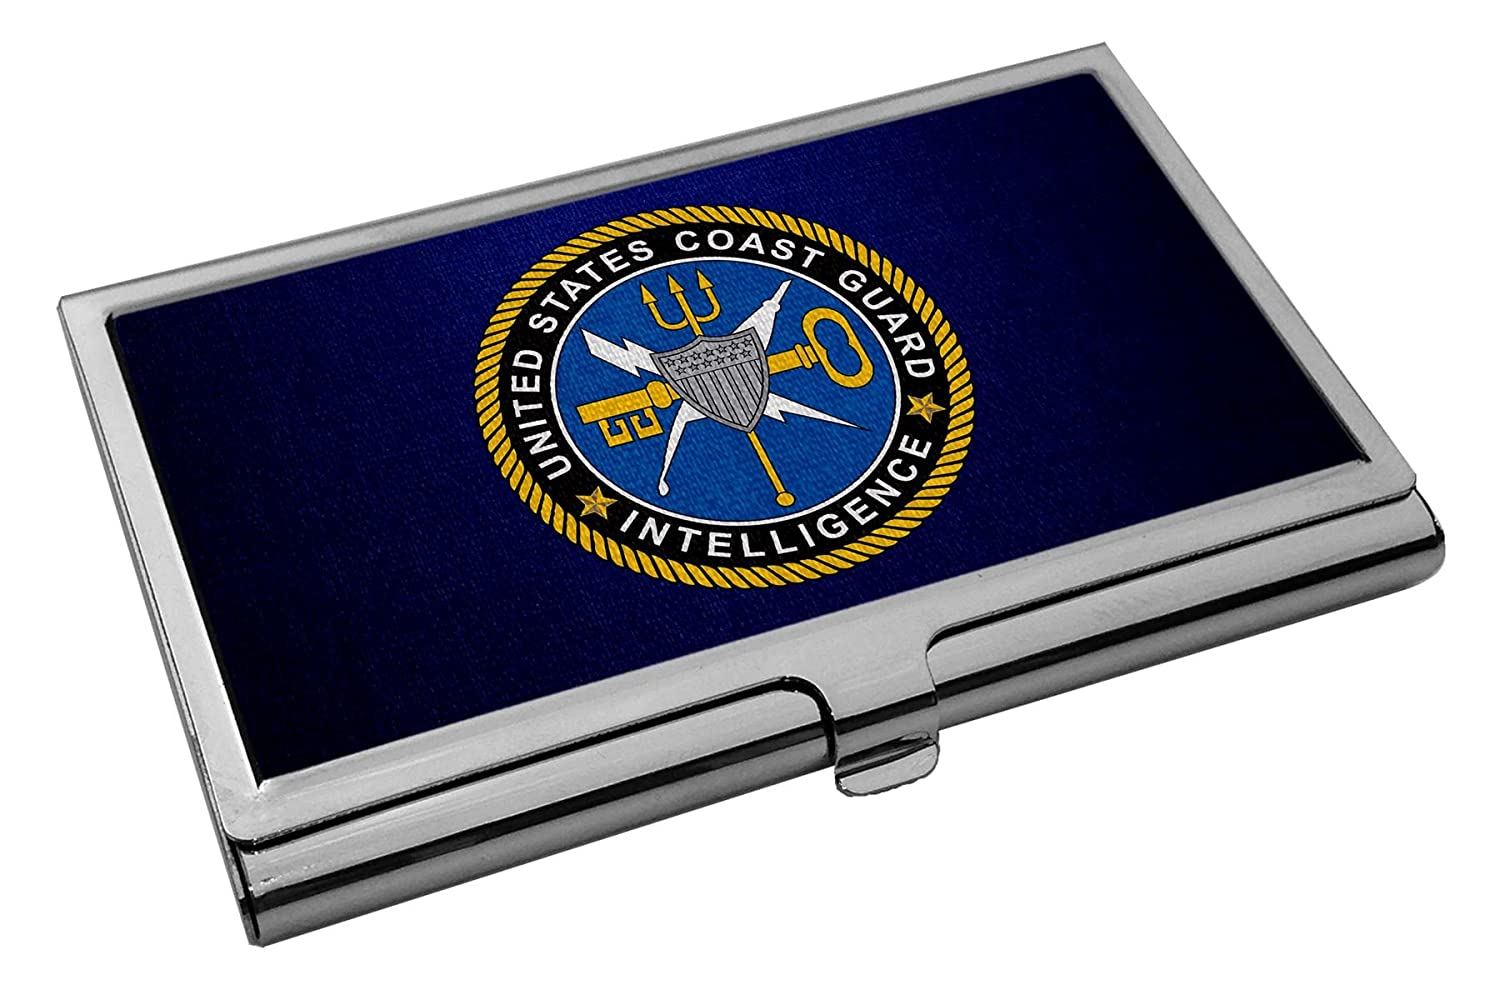 Chic business card holder us coast guard intelligence cgi www chic business card holder us coast guard intelligence cgi colourmoves